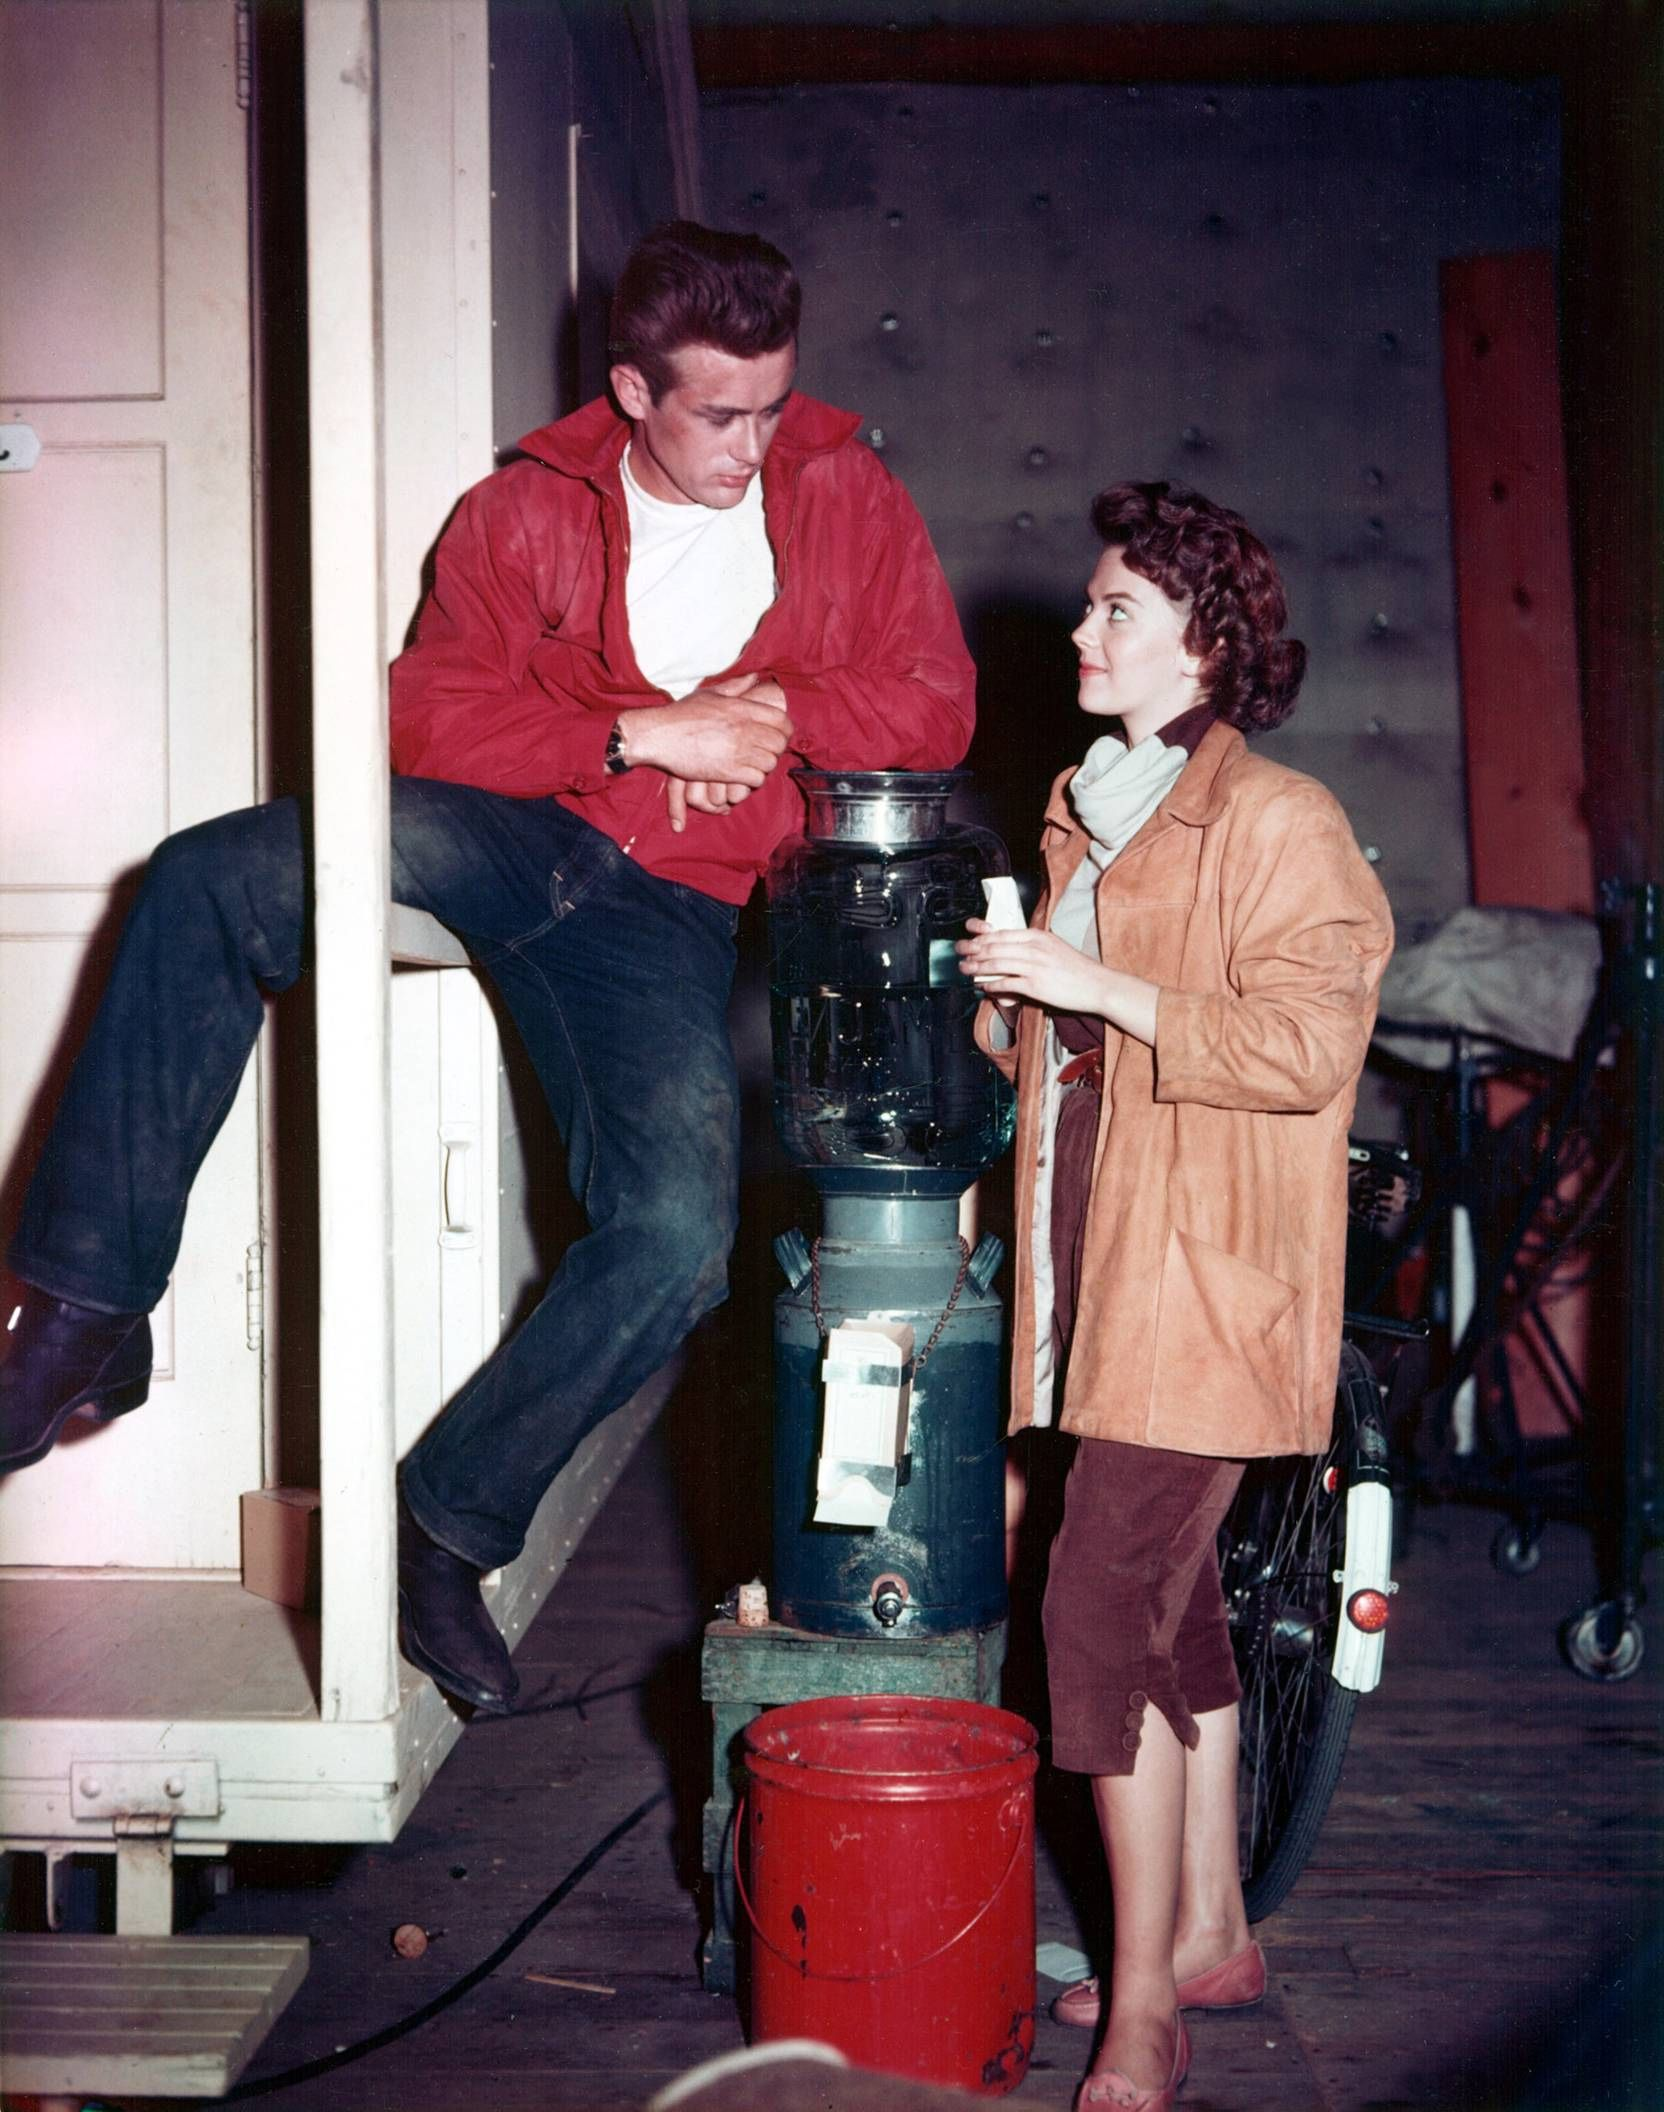 james dean and natalie wood on the rebel out a cause set james dean and natalie wood on the rebel out a cause set